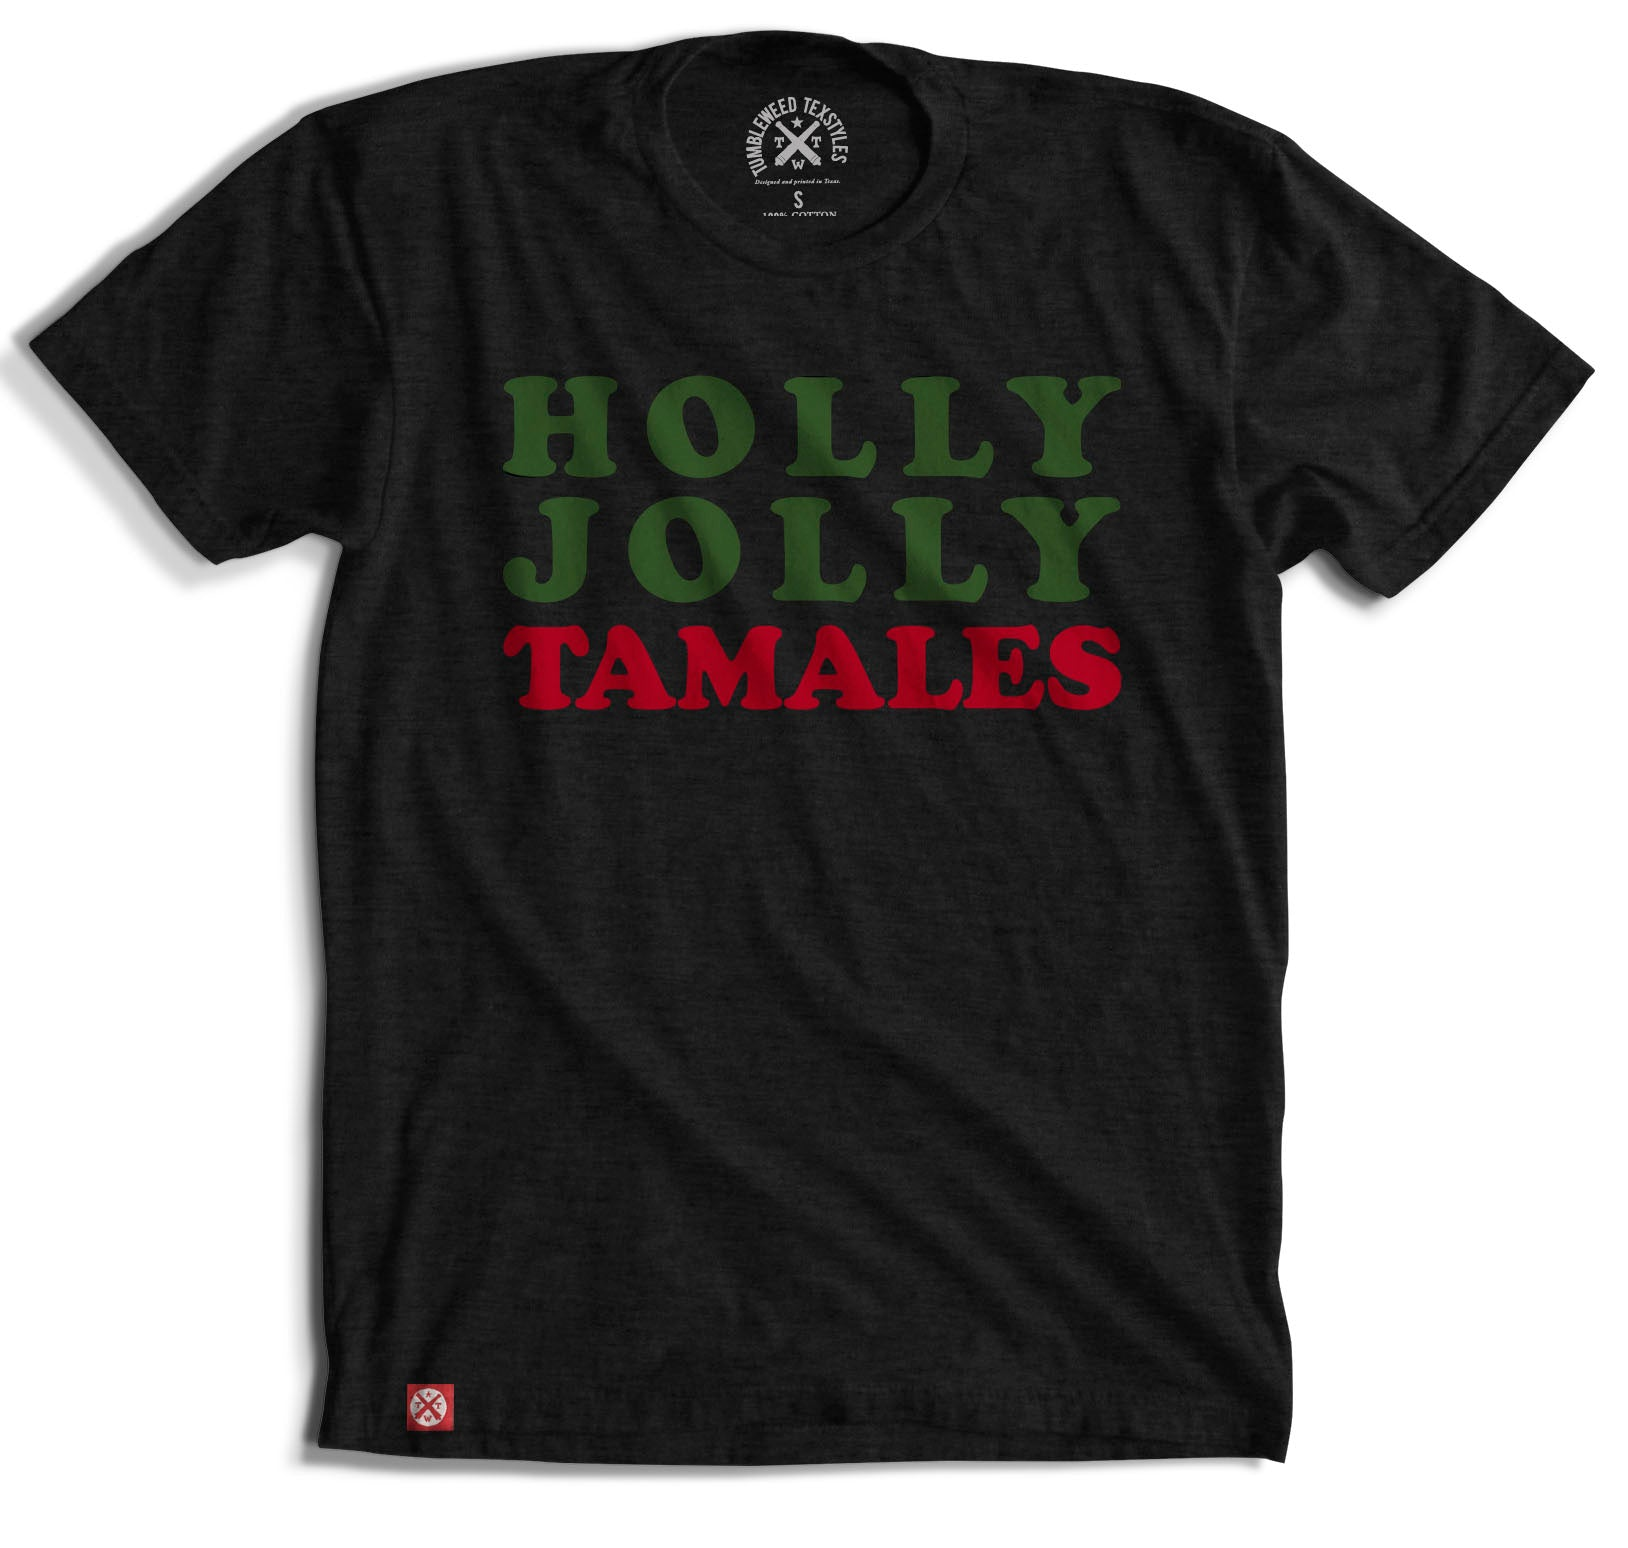 Holly Jolly Tamales T-shirt - Black